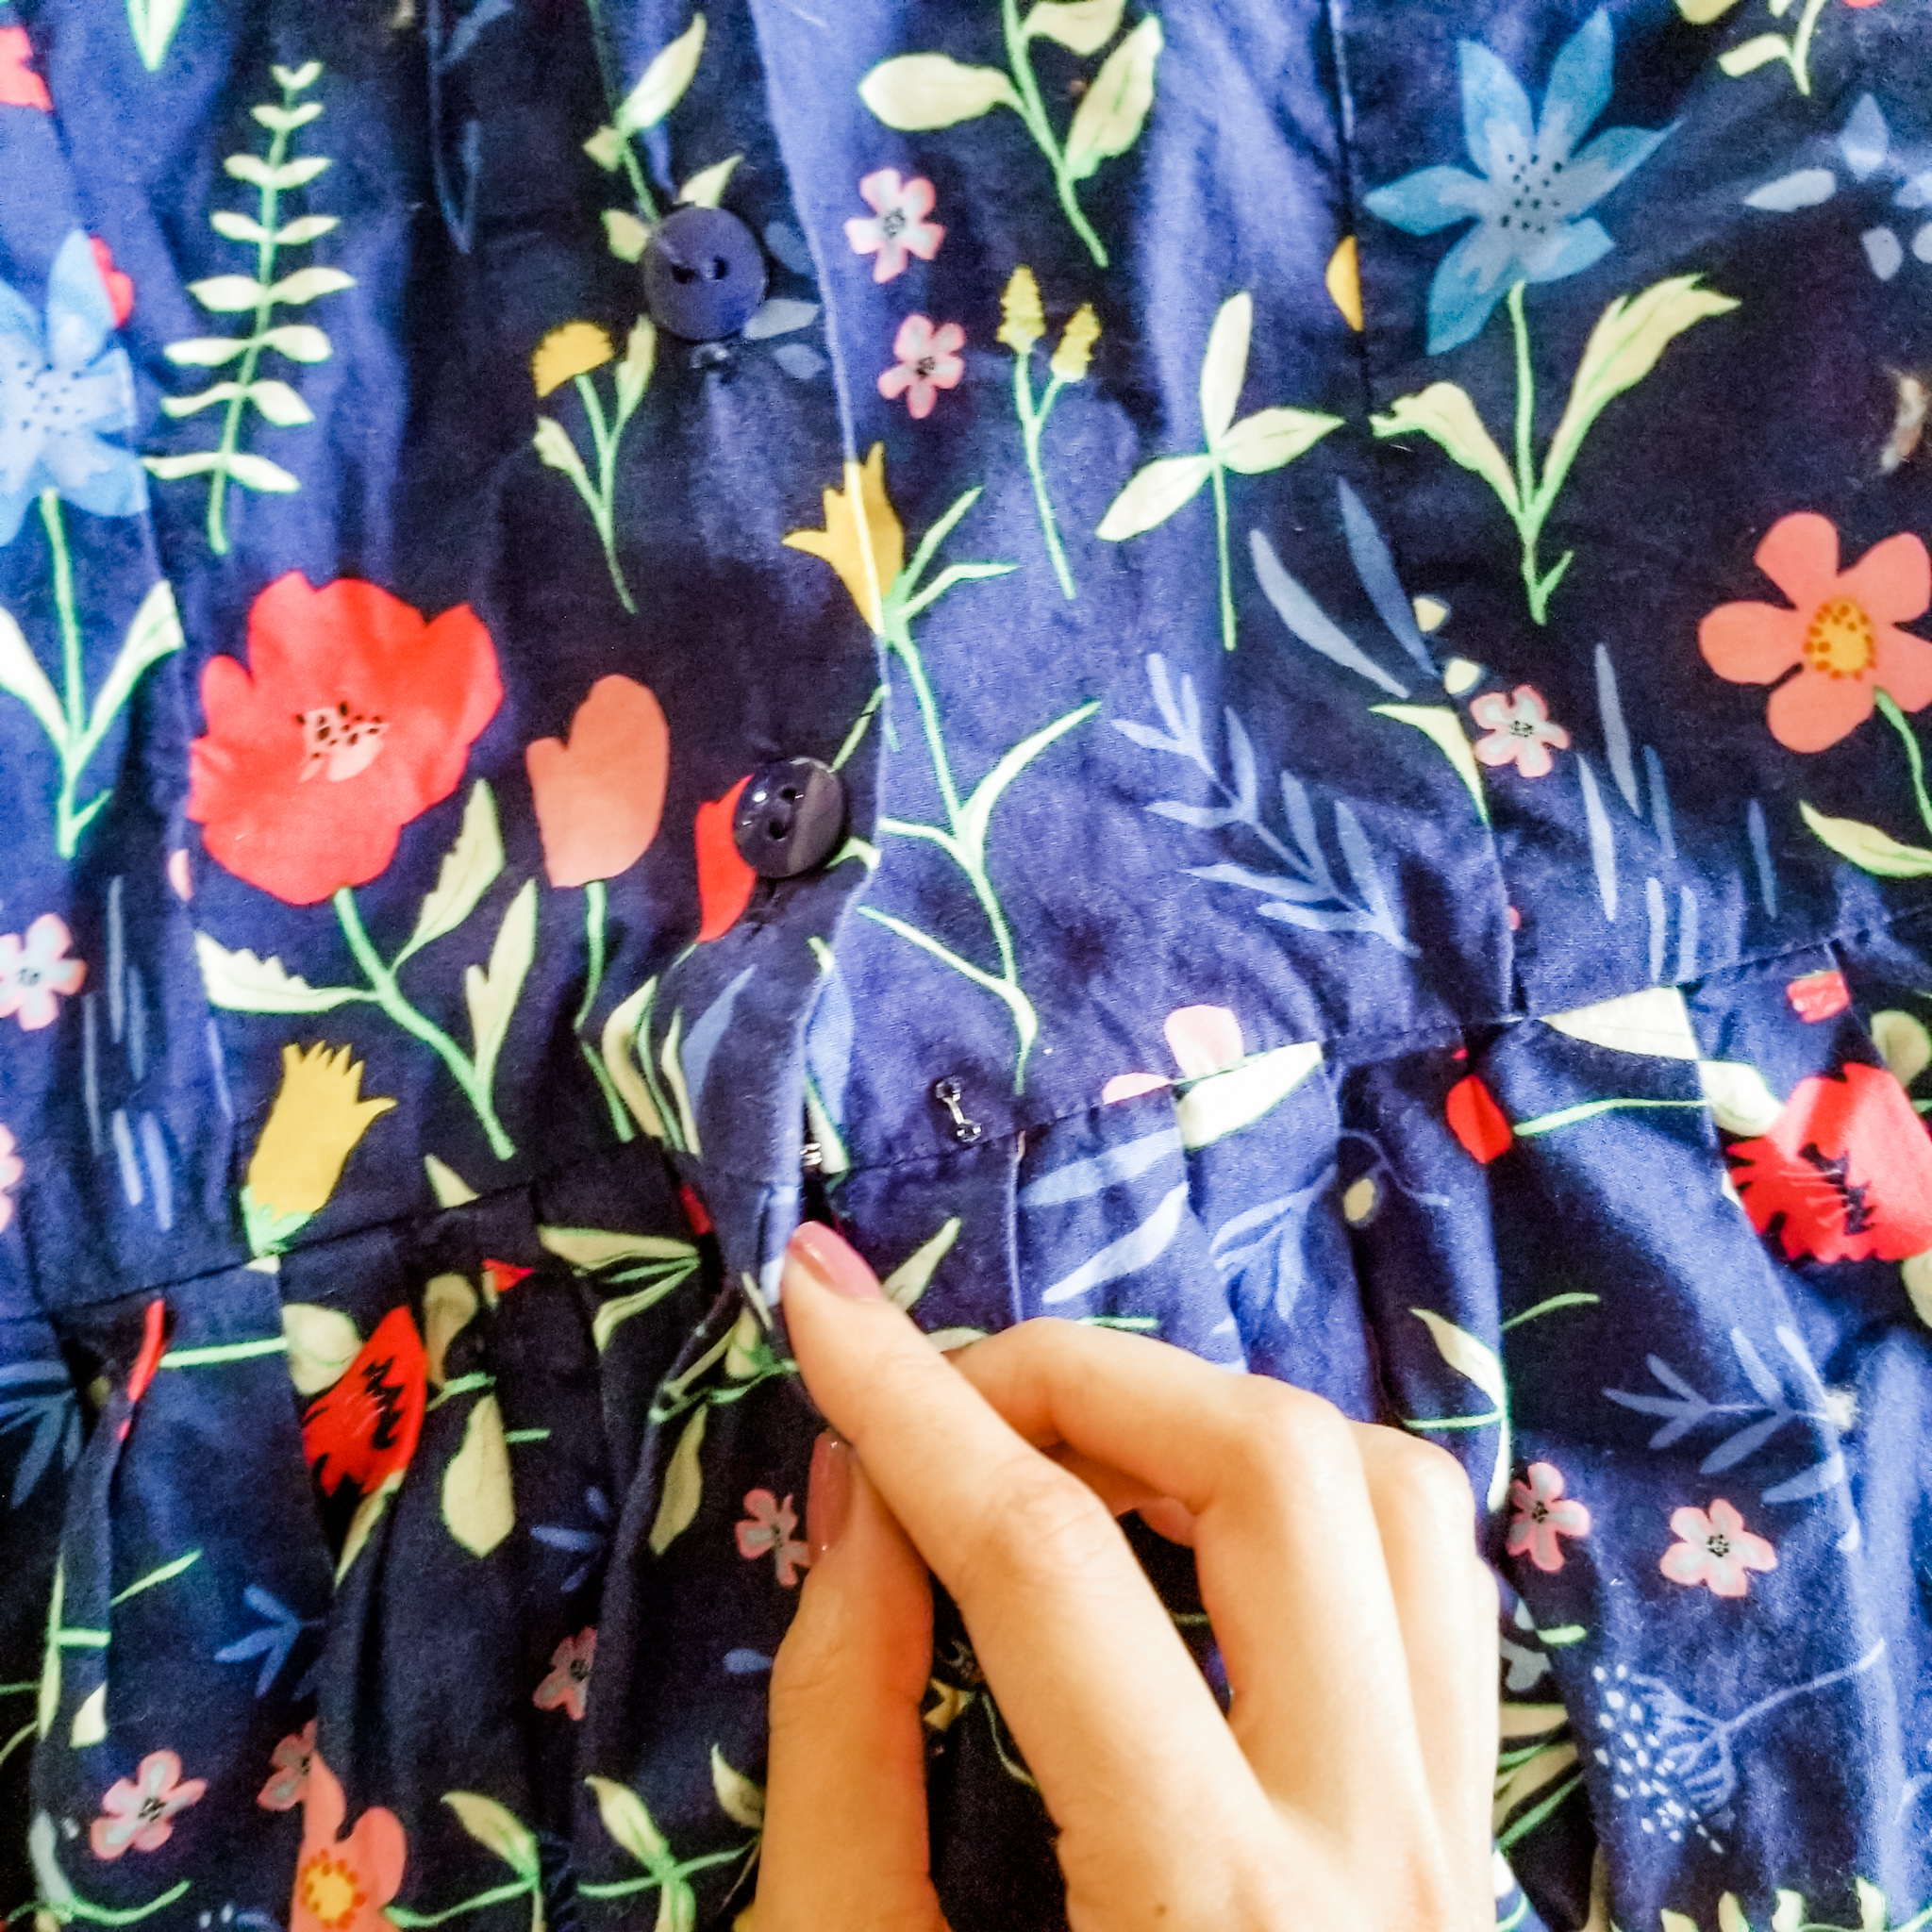 Even after mending this dress I still think I would like to make a different one in another pattern. I really love this dress and the fit but can't seem to wear it due to the floral pattern that just isn't quite for me.